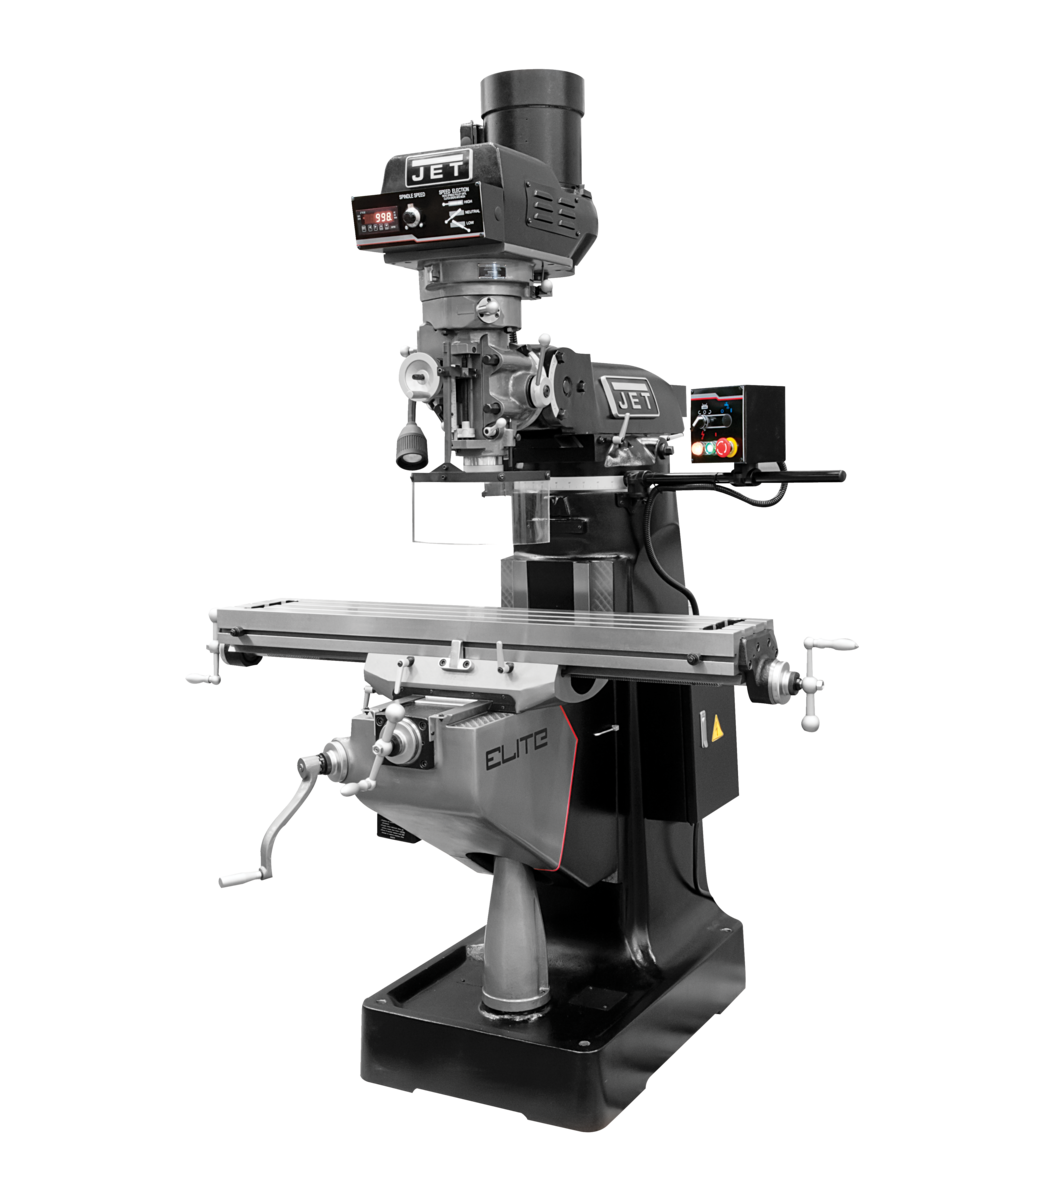 EVS-949 Mill with 3-Axis ACU-RITE 303 (Quill) DRO and Servo X-Axis Powerfeed